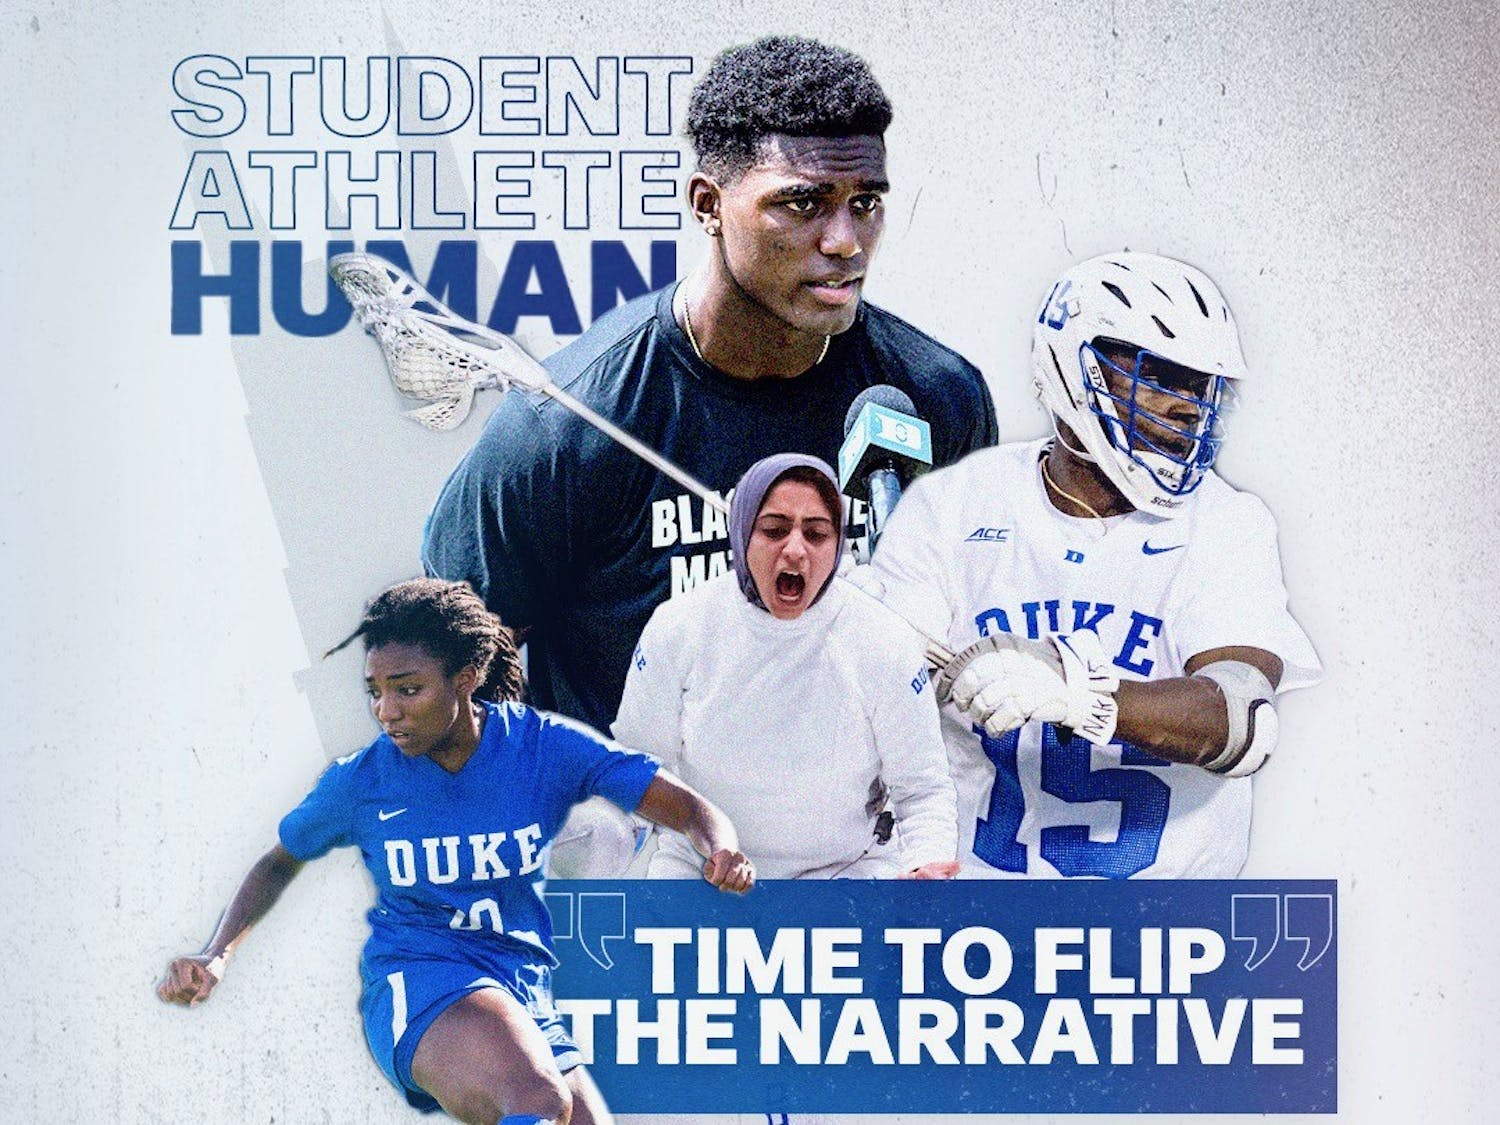 """UNCUT, which plans to launch at Duke soon, aims to show who student-athletes are beyond their sport. Their slogan is """"Student. Athlete. Human."""""""